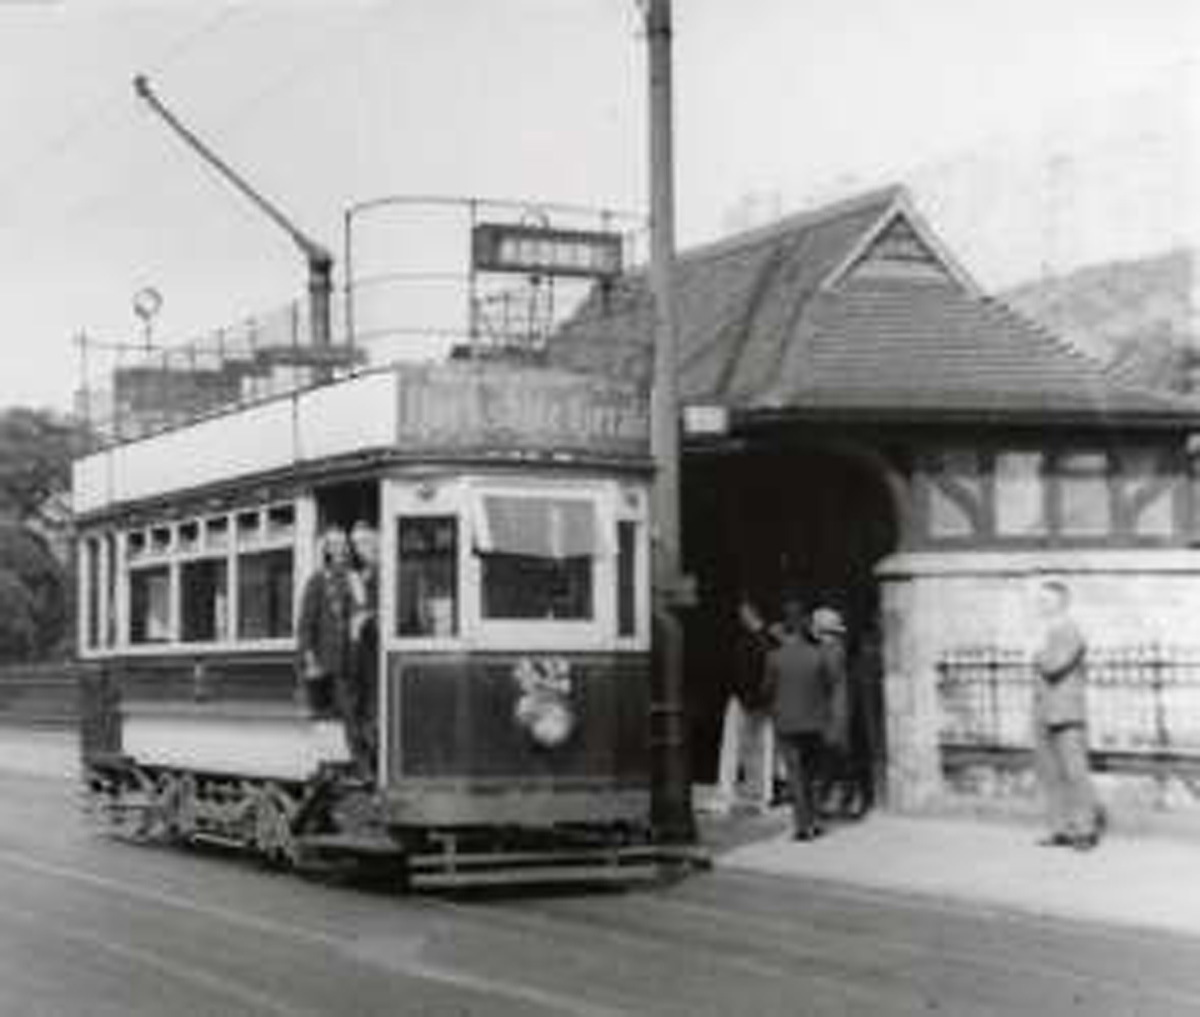 The tram shelter as it was in the 1930s. Image courtesy of York's City Archives https://cyc.sdp.sirsidynix.net.uk